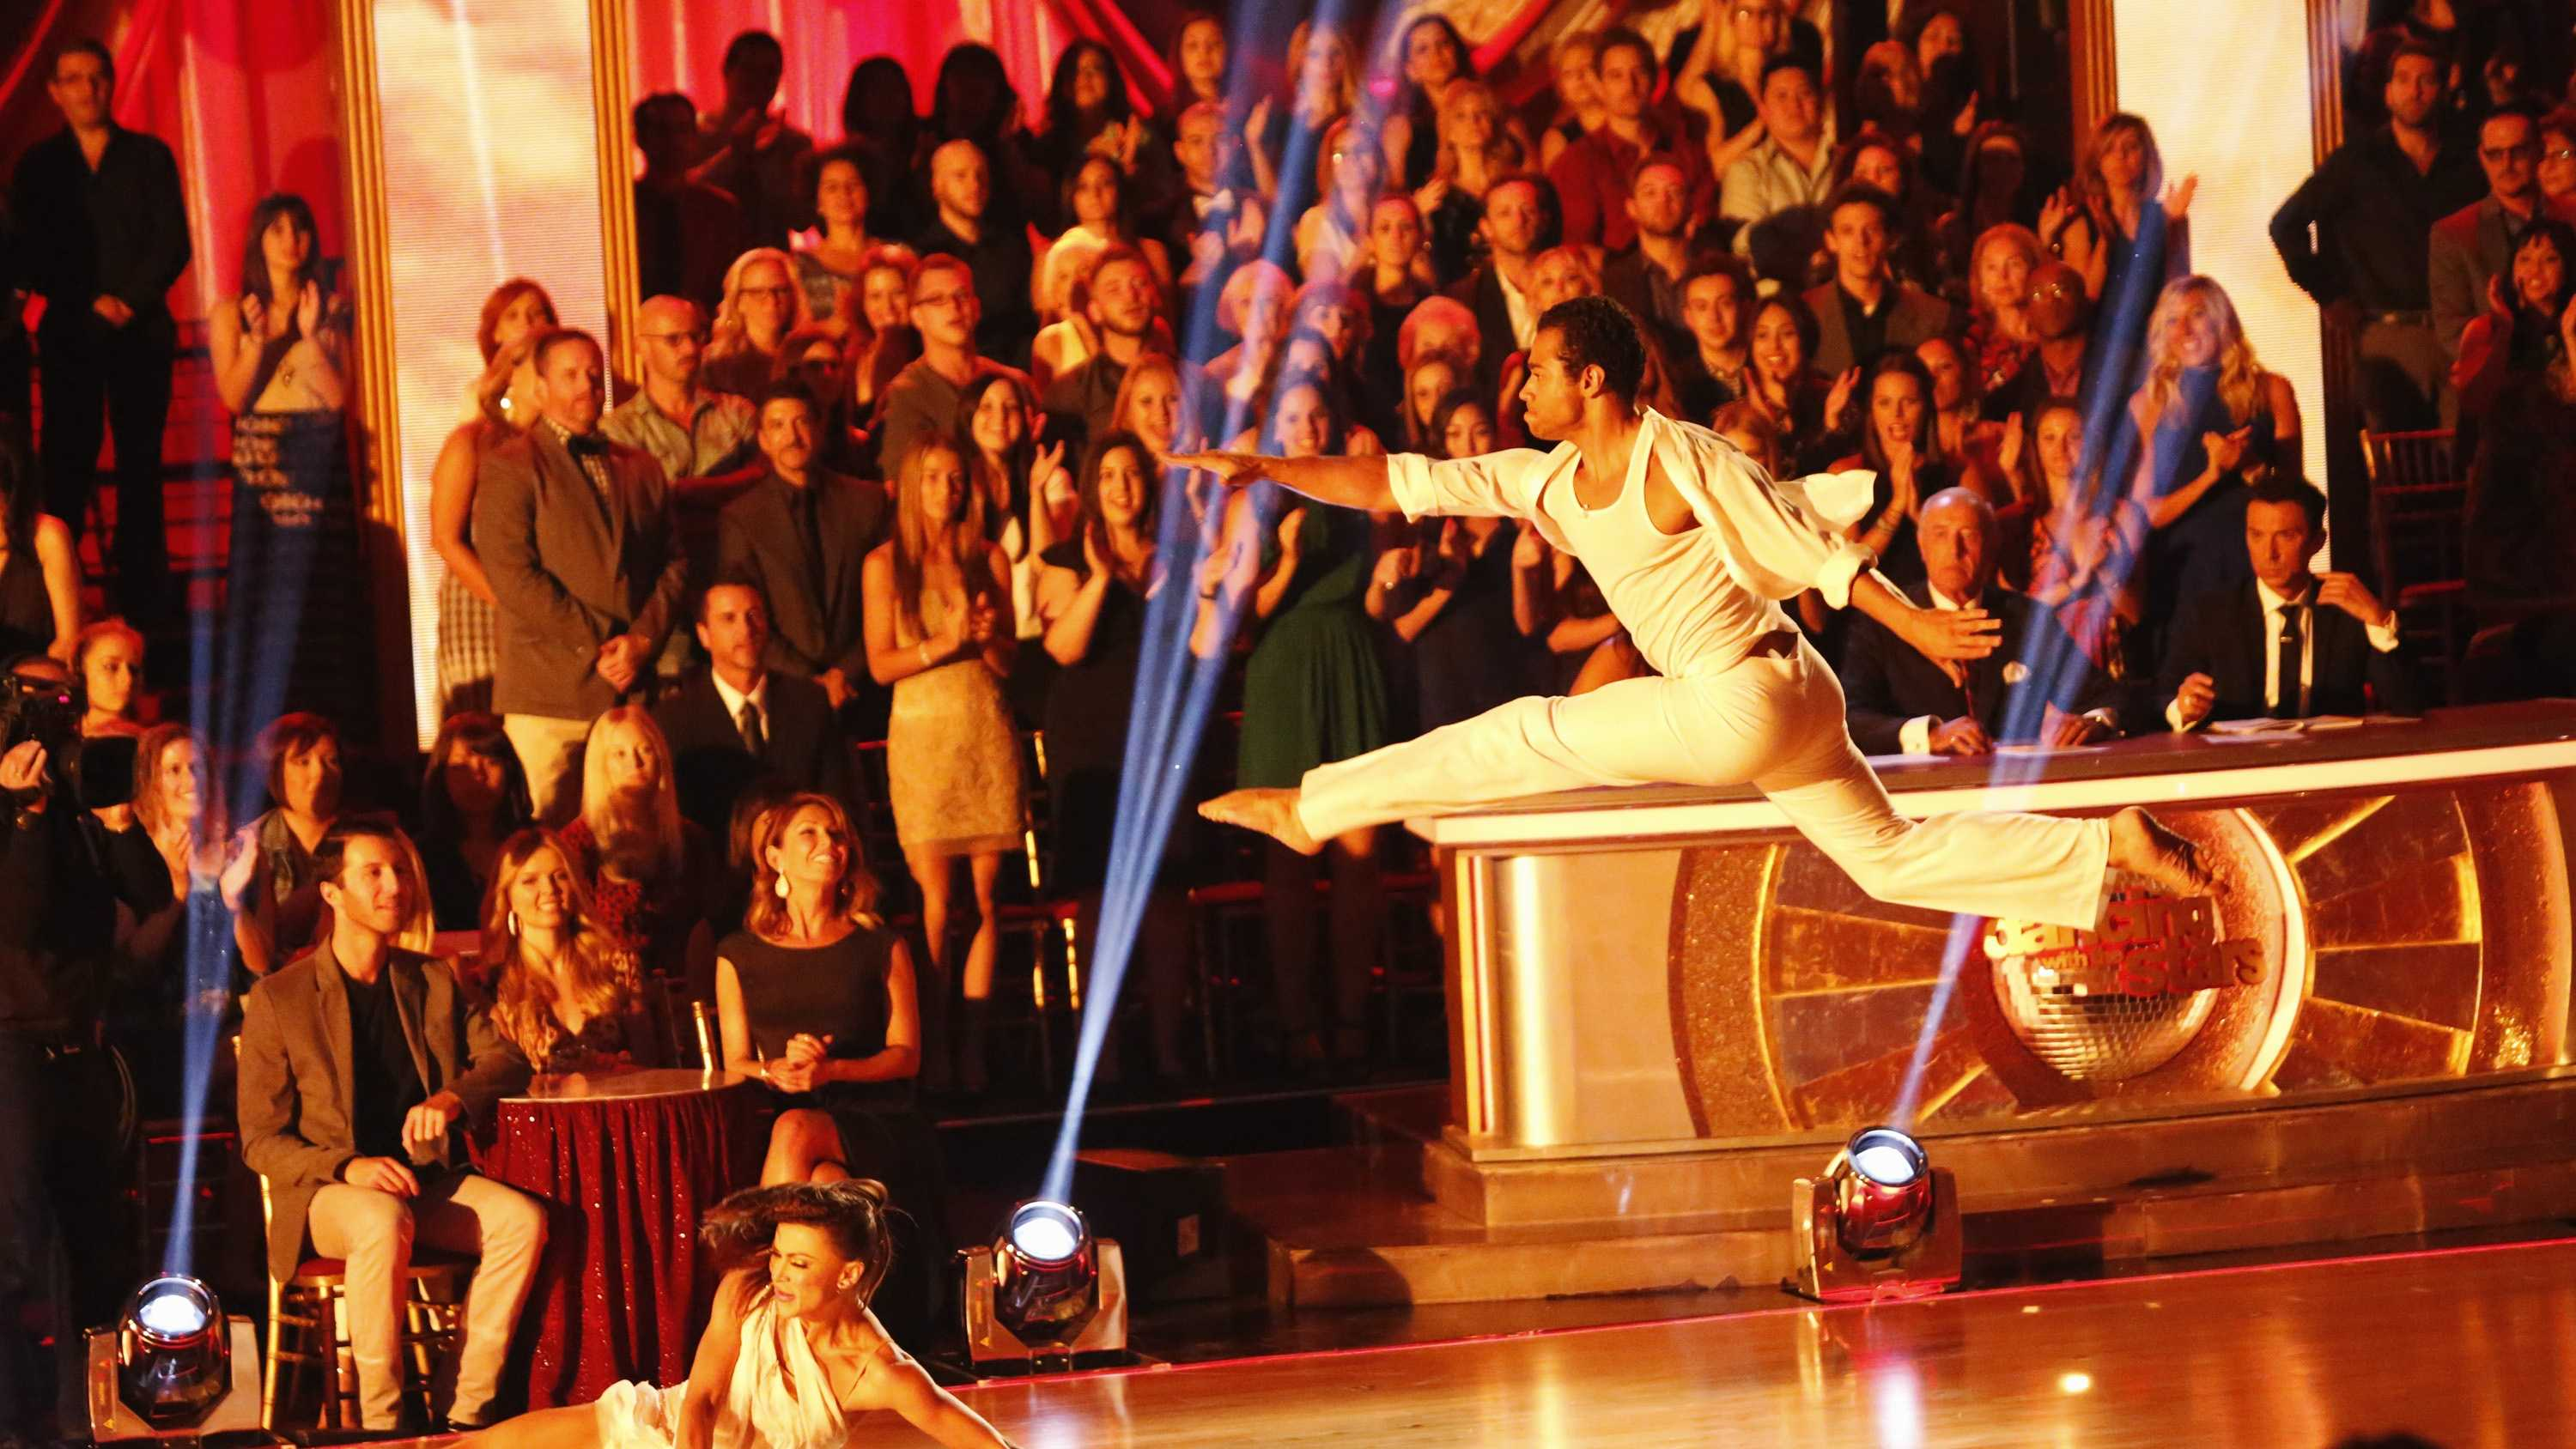 The show features competitive dance, dynamic group performances and musical guests, all building to a climactic elimination. Each week viewers can vote for their favorite dancing performance. Beginning with the second episode on Monday, September 23, one couple will be eliminated at the end of the show by combining the judges' scores from that night with the public votes from the previous week.